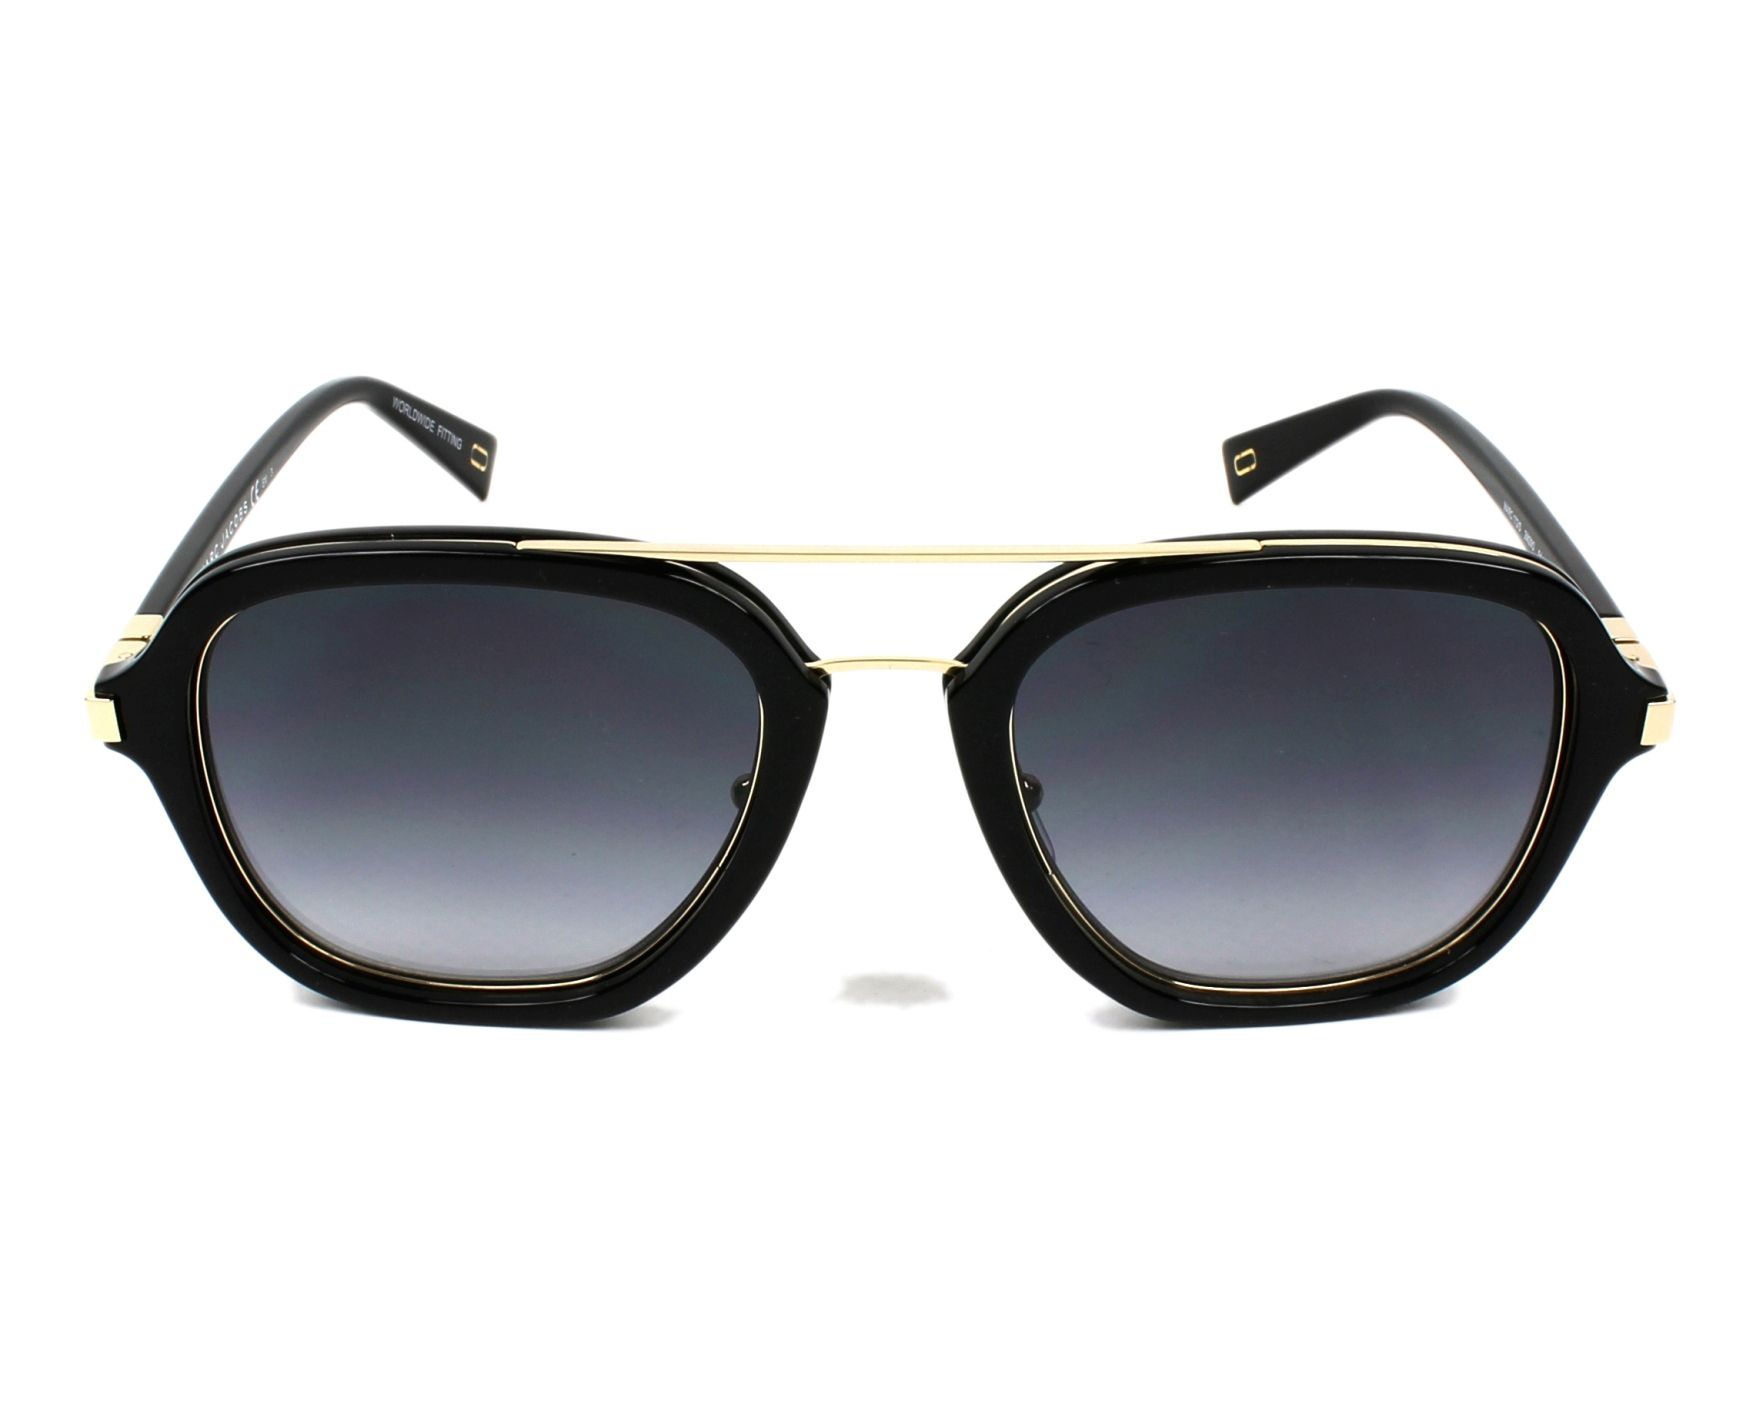 Sunglasses Marc Jacobs MARC-172-S 2M2 9O 54-22 Black Gold ae586d9b9e37